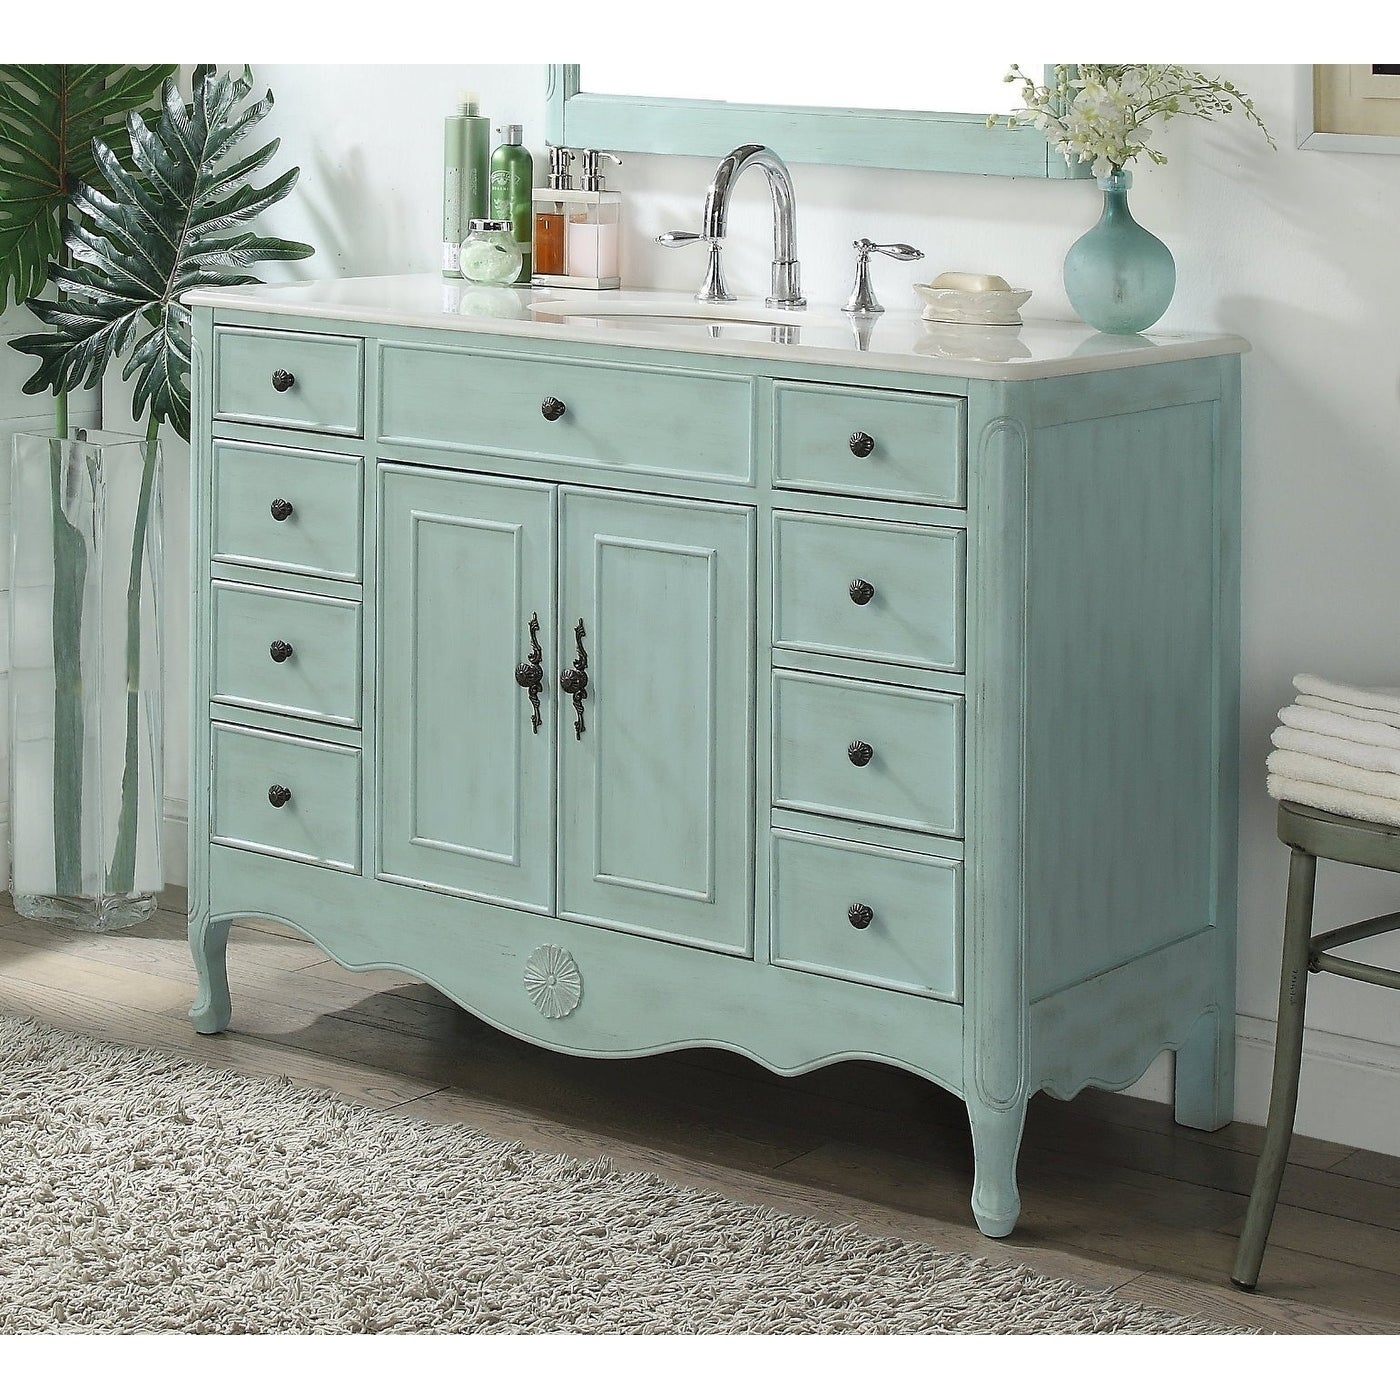 "Shop 46 5"" Benton Collection Daleville Light Blue Shabby Chic Vanity"